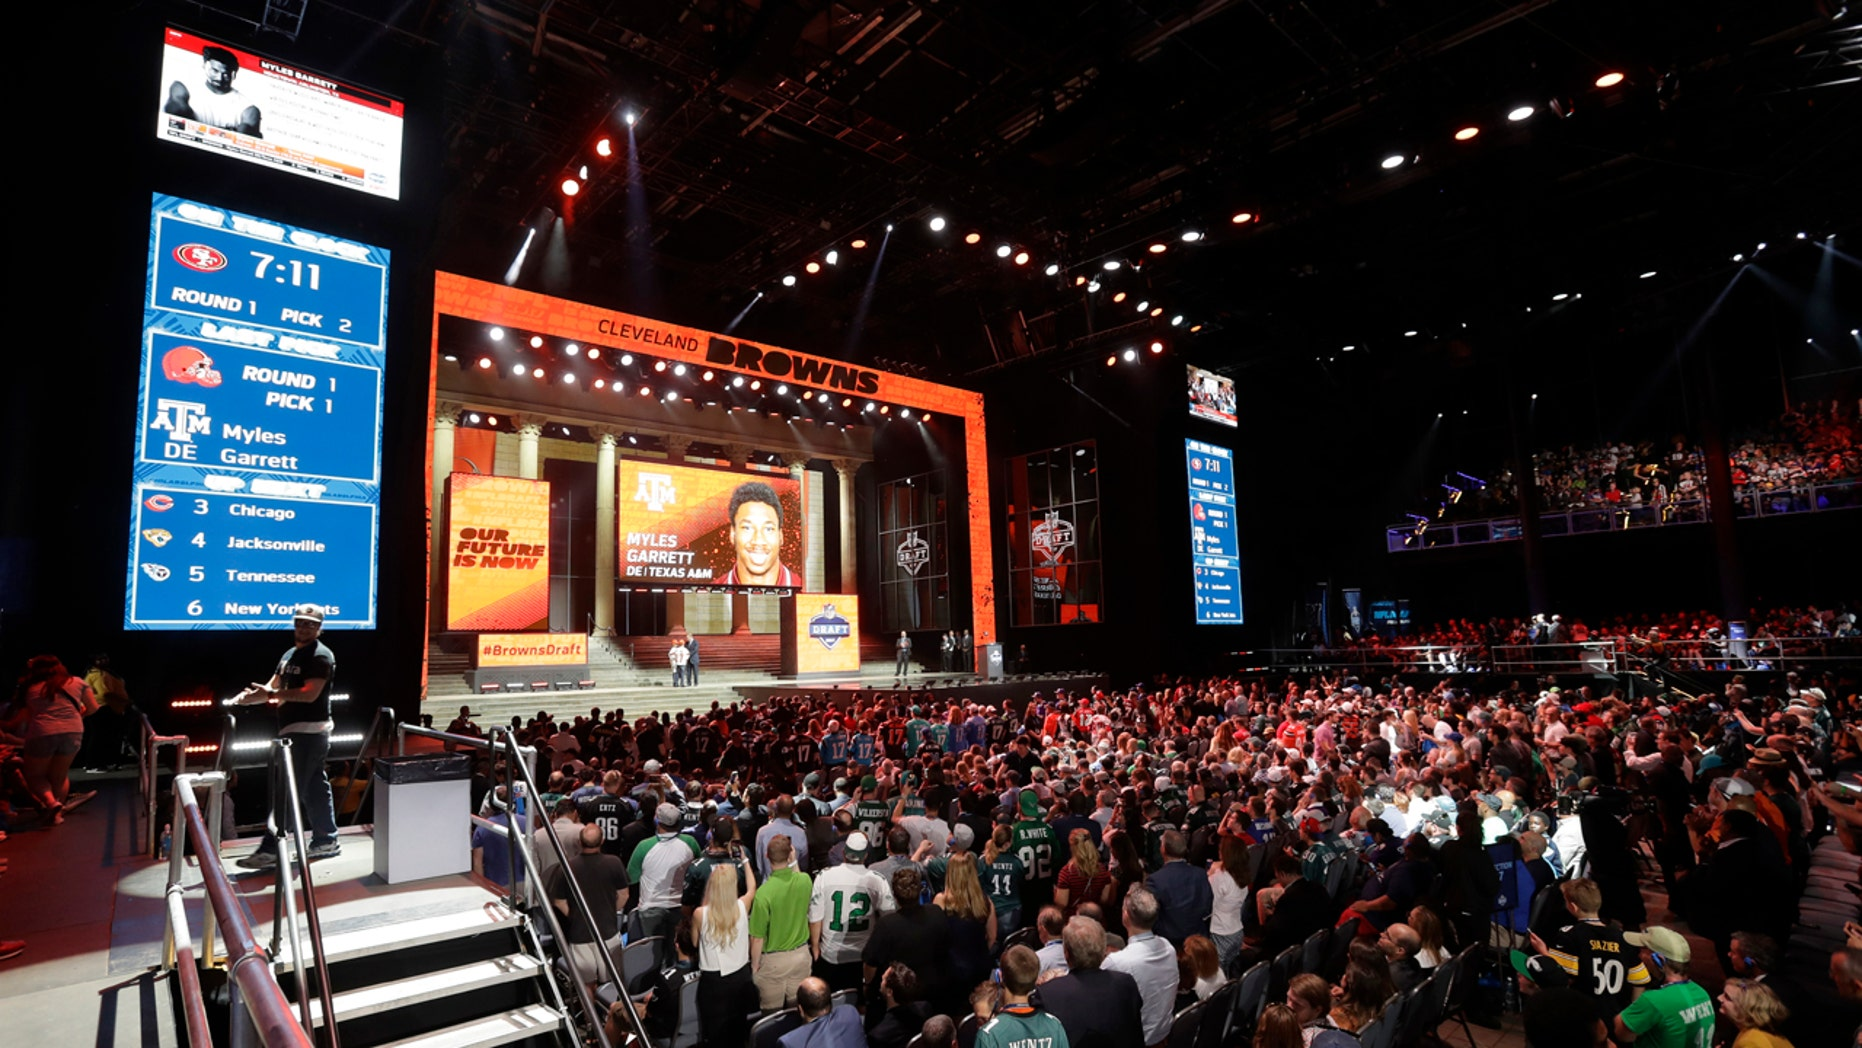 Fans cheer after Texas A&M's Myles Garrett was selected with the number one overall pick by the Cleveland Browns during the first round of the 2017 NFL football draft, Thursday, April 27, 2017, in Philadelphia.